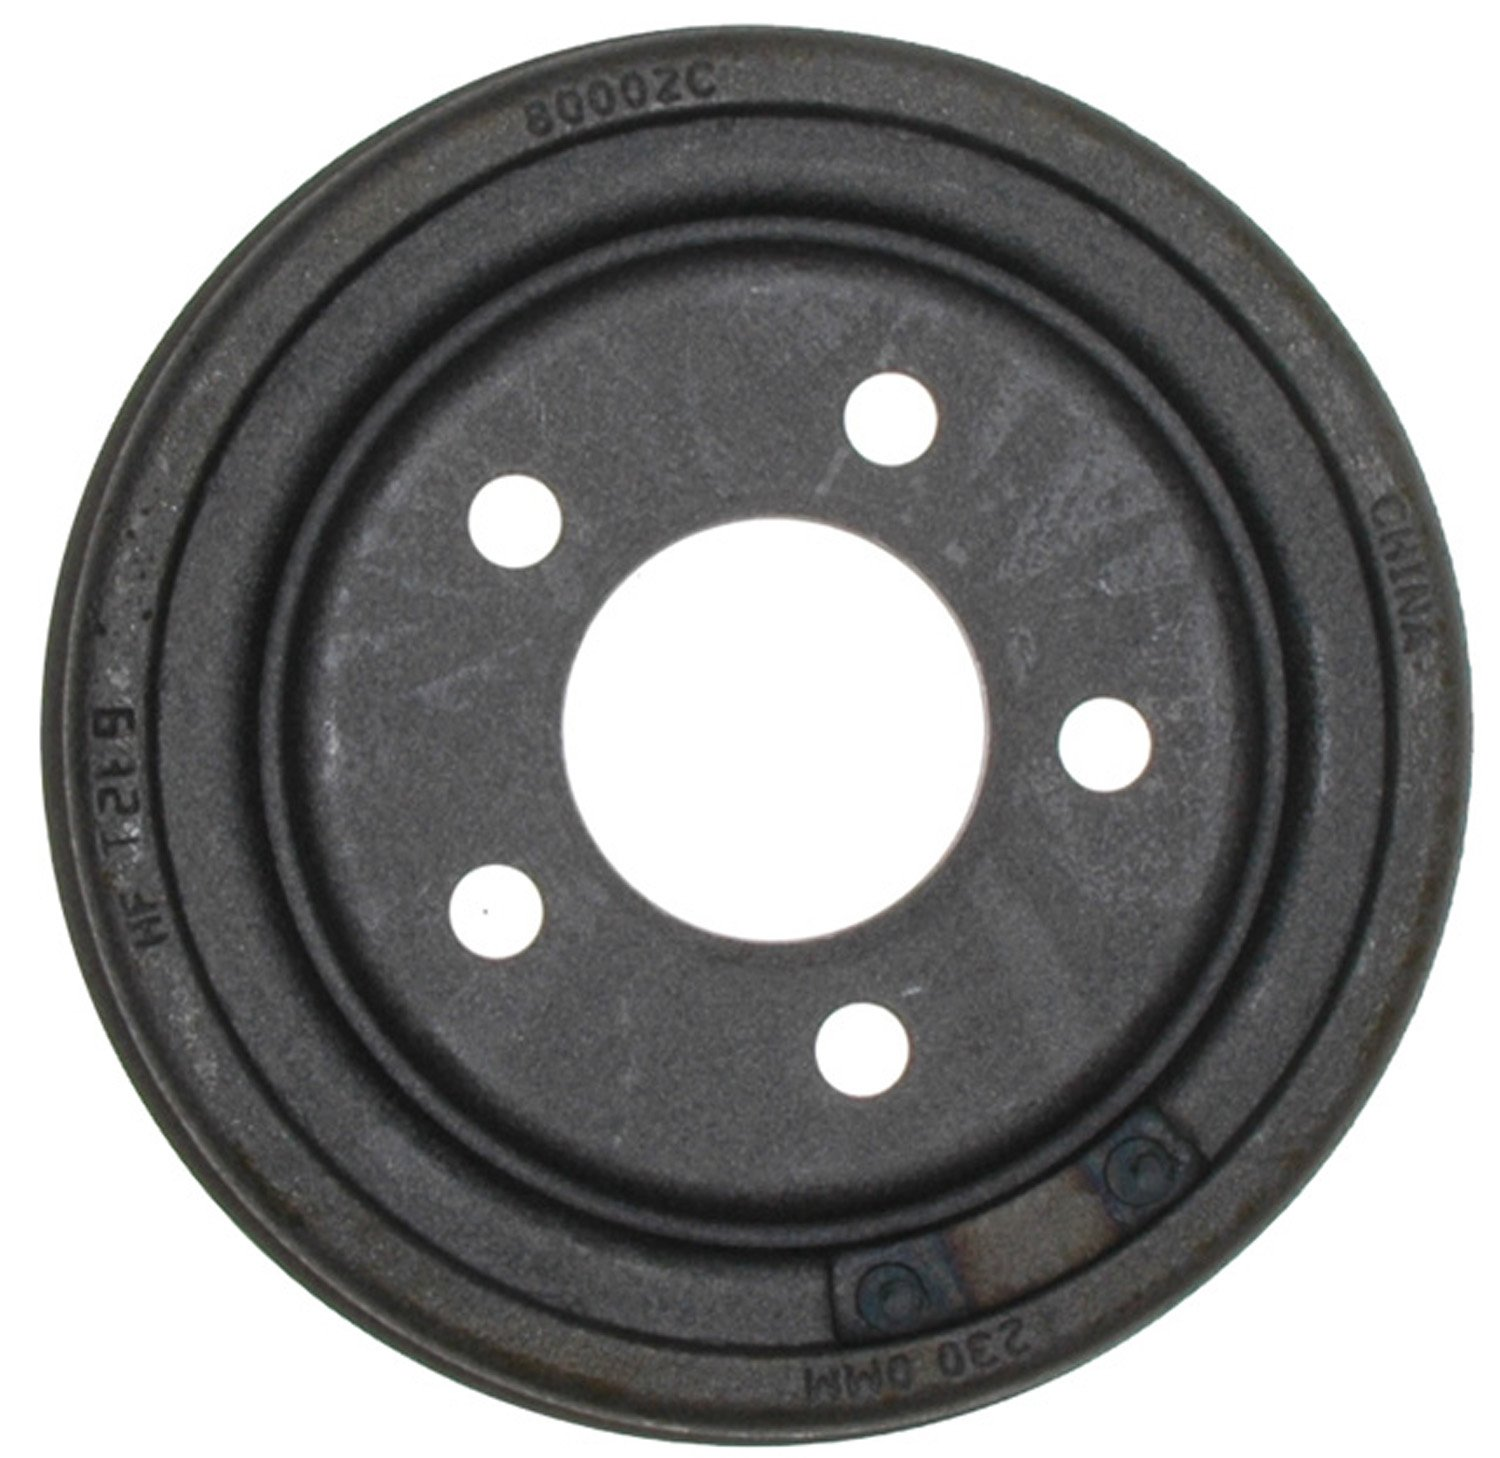 ACDelco 18B232 Professional Rear Brake Drum Assembly